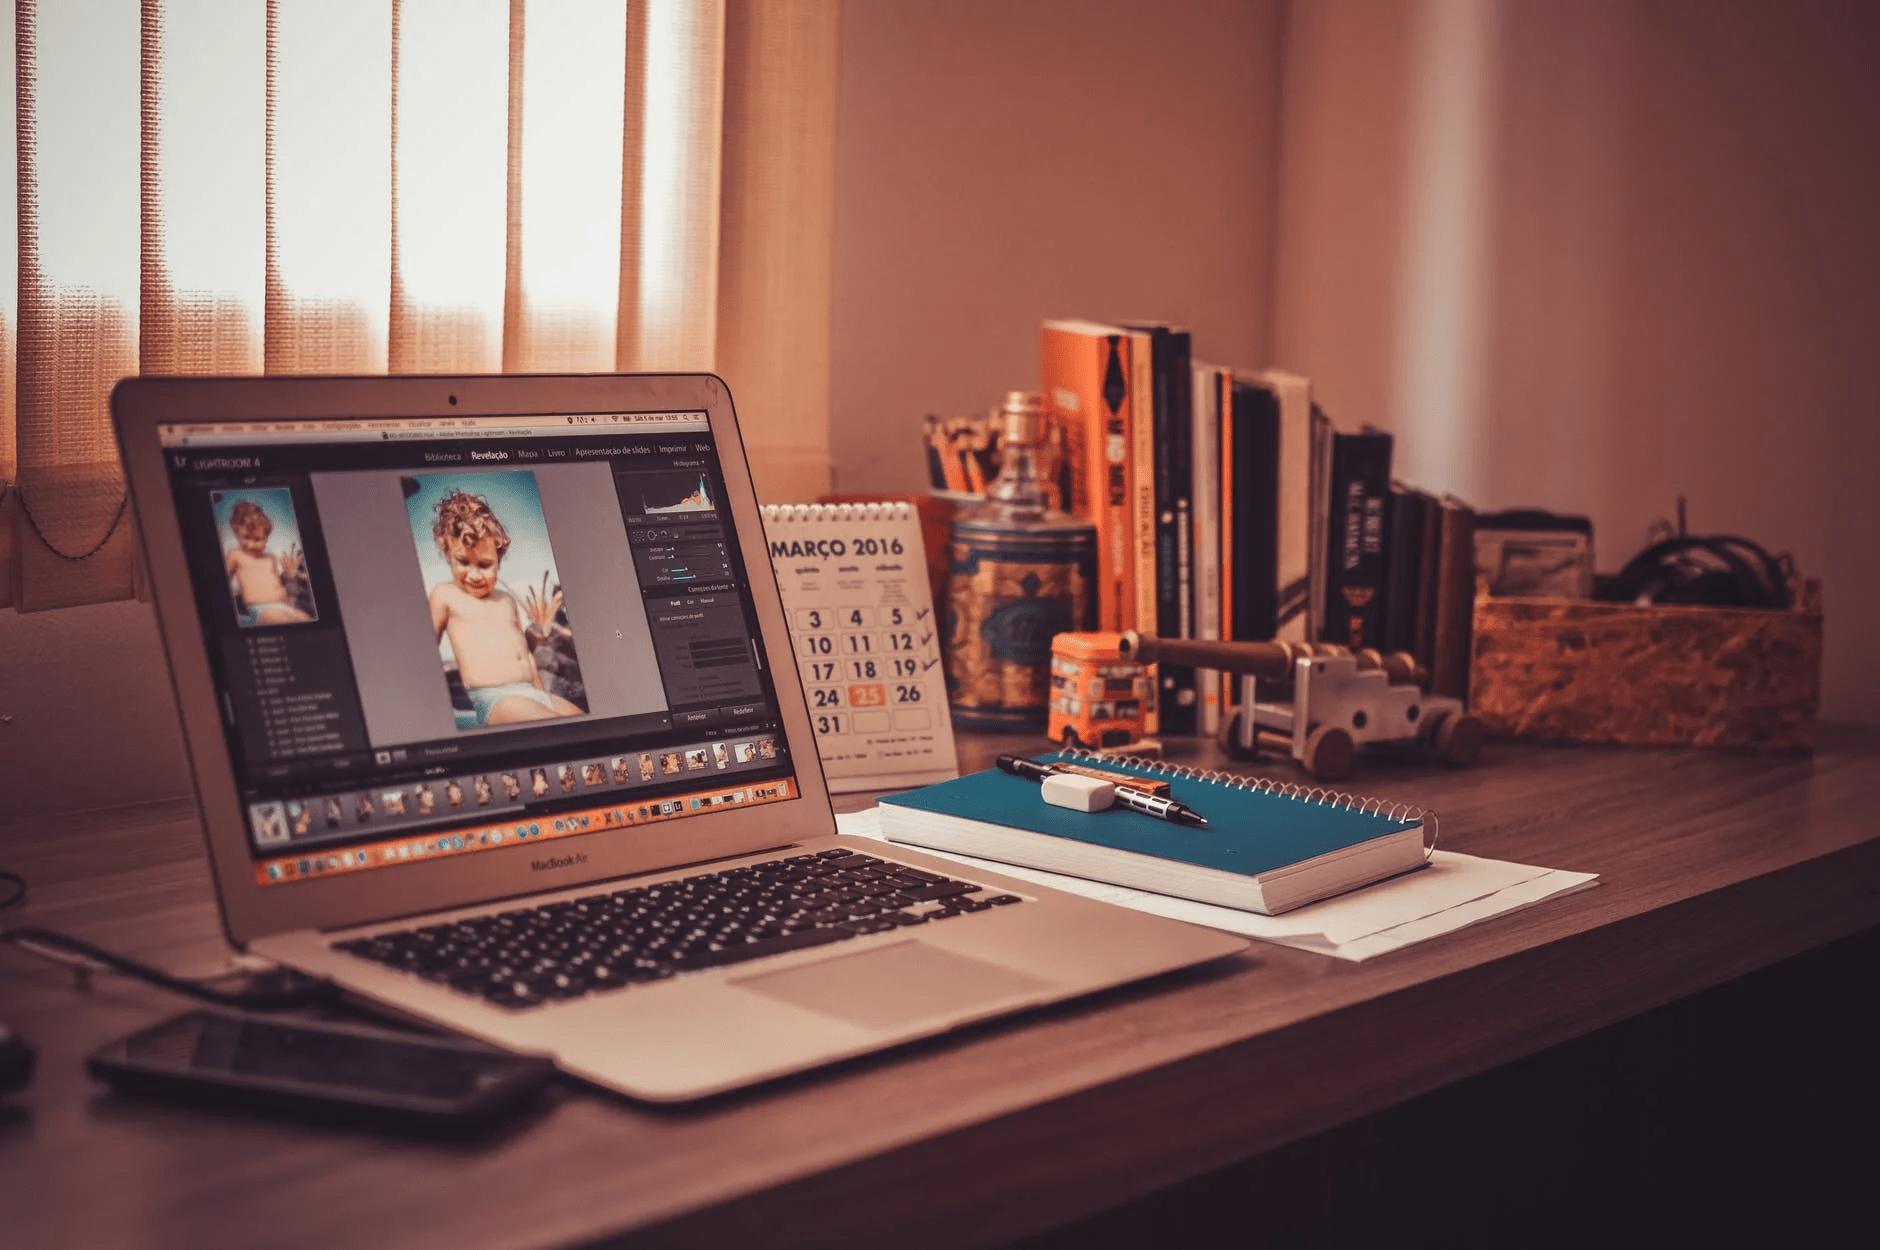 Editing Software Every Designer Should Have